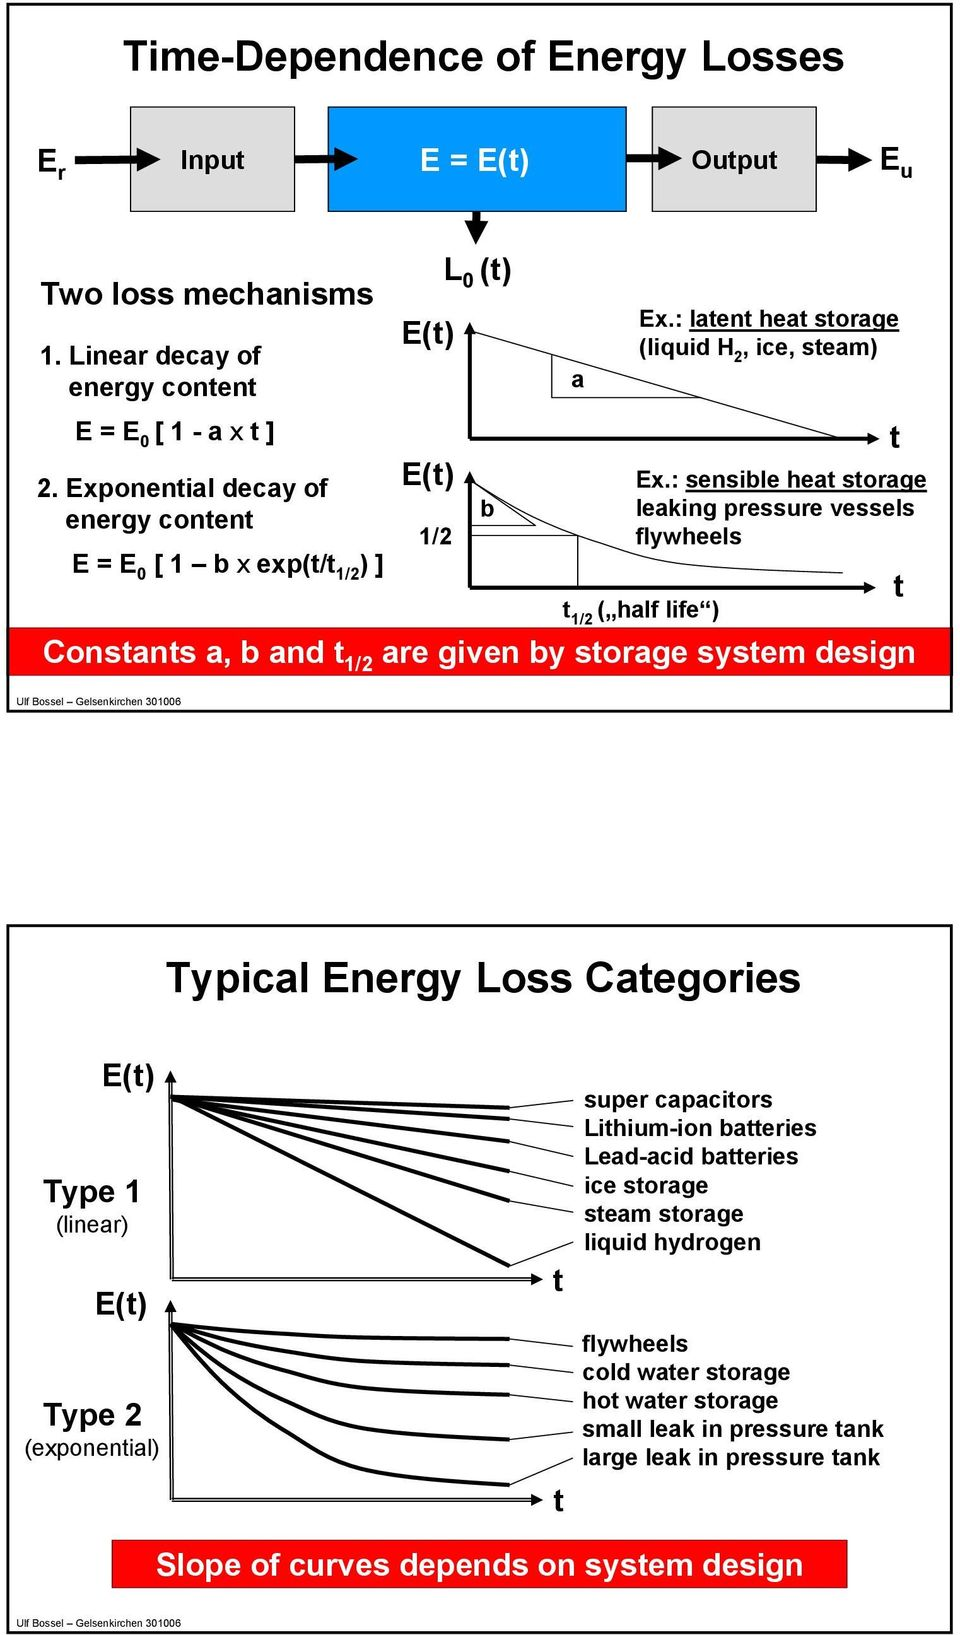 : sensible heat storage leaking pressure vessels flywheels t 1/2 ( half life ) Constants a, b and t 1/2 are given by storage system design b t t Typical Energy Loss Categories E(t) Type